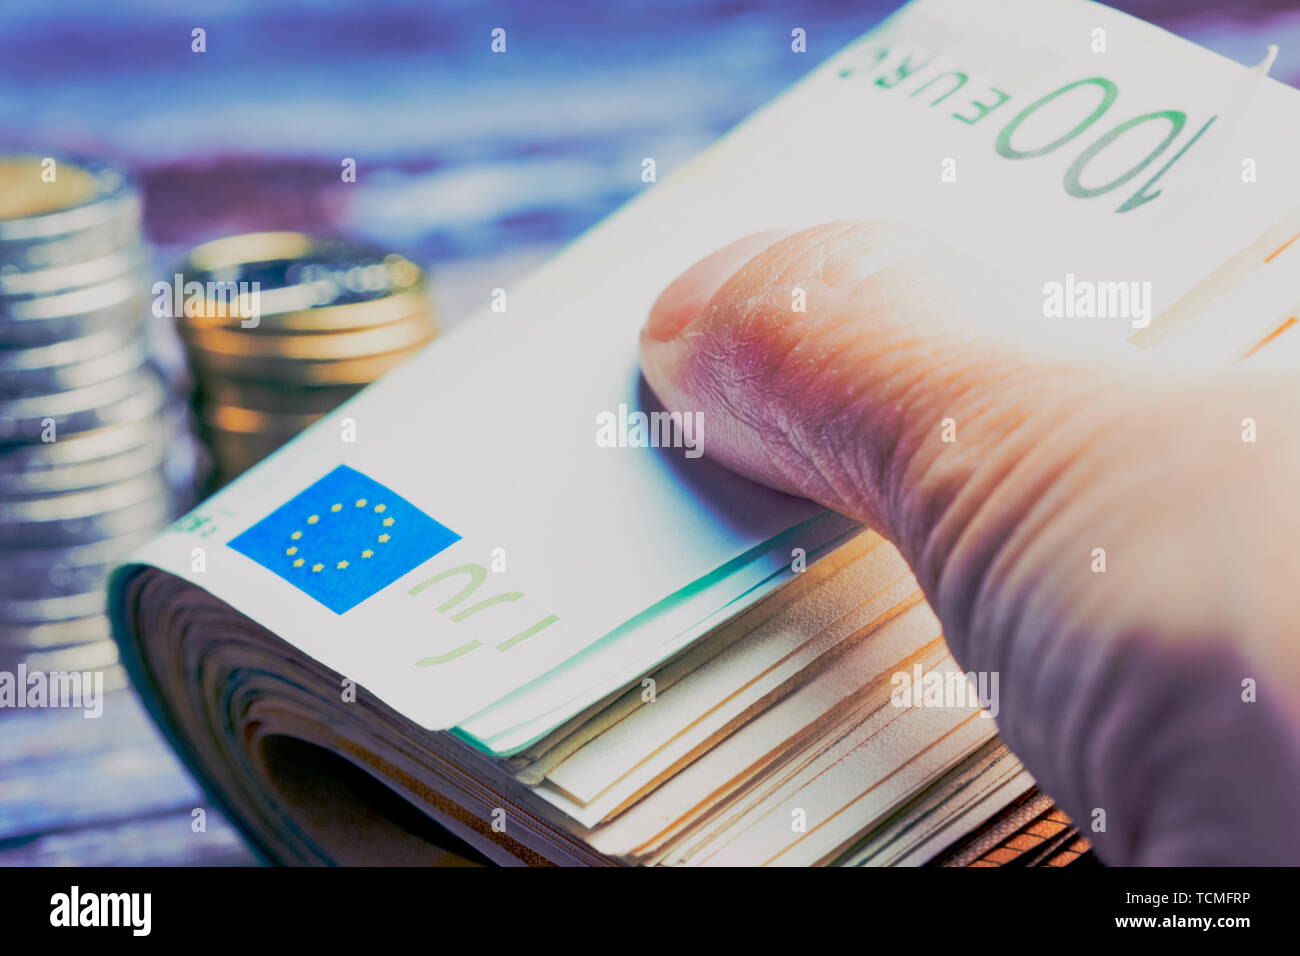 female hand close up whilst holding bunch of Euro banknotes with one hundred note, in the background lying blurred Euro coins, cold color style - Stock Image